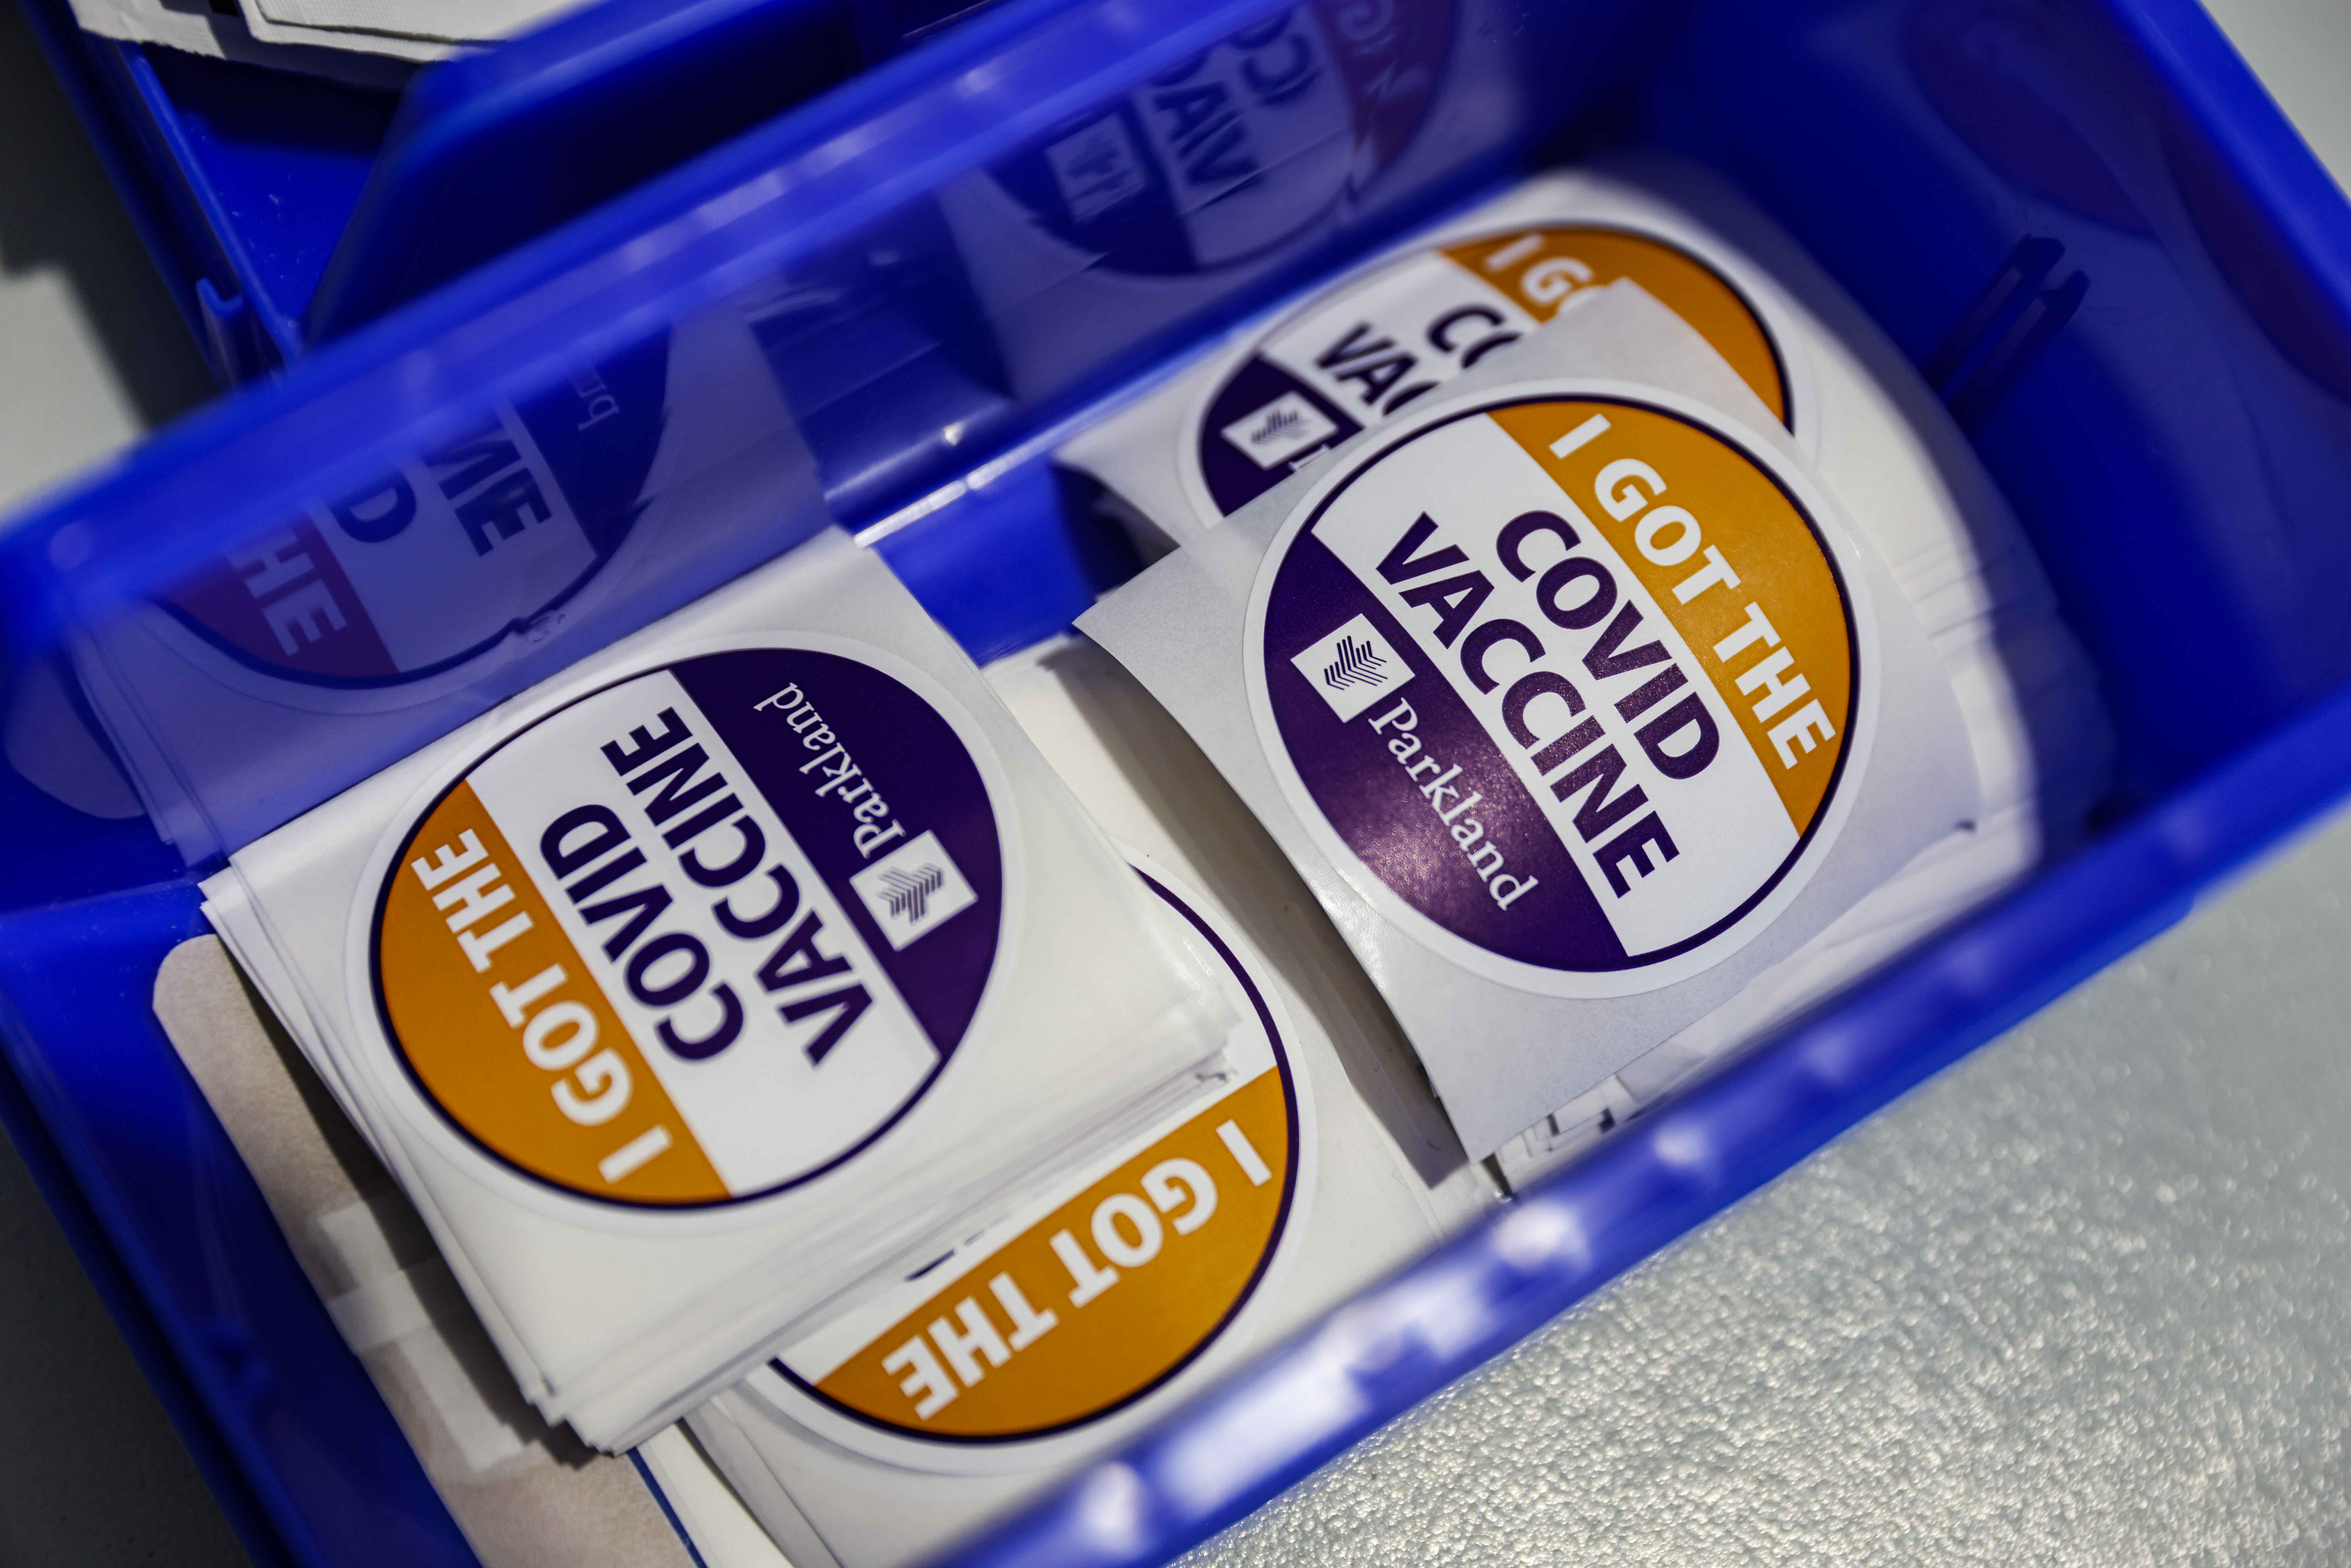 COVID vaccine stickers where the Pfizer-BioNTech COVID-19 vaccine is administed at Ellis Davis Fieldhouse, a Parkland Hospital testing and vaccine location, in Dallas on March 3, 2021. (Lola Gomez/The Dallas Morning News)